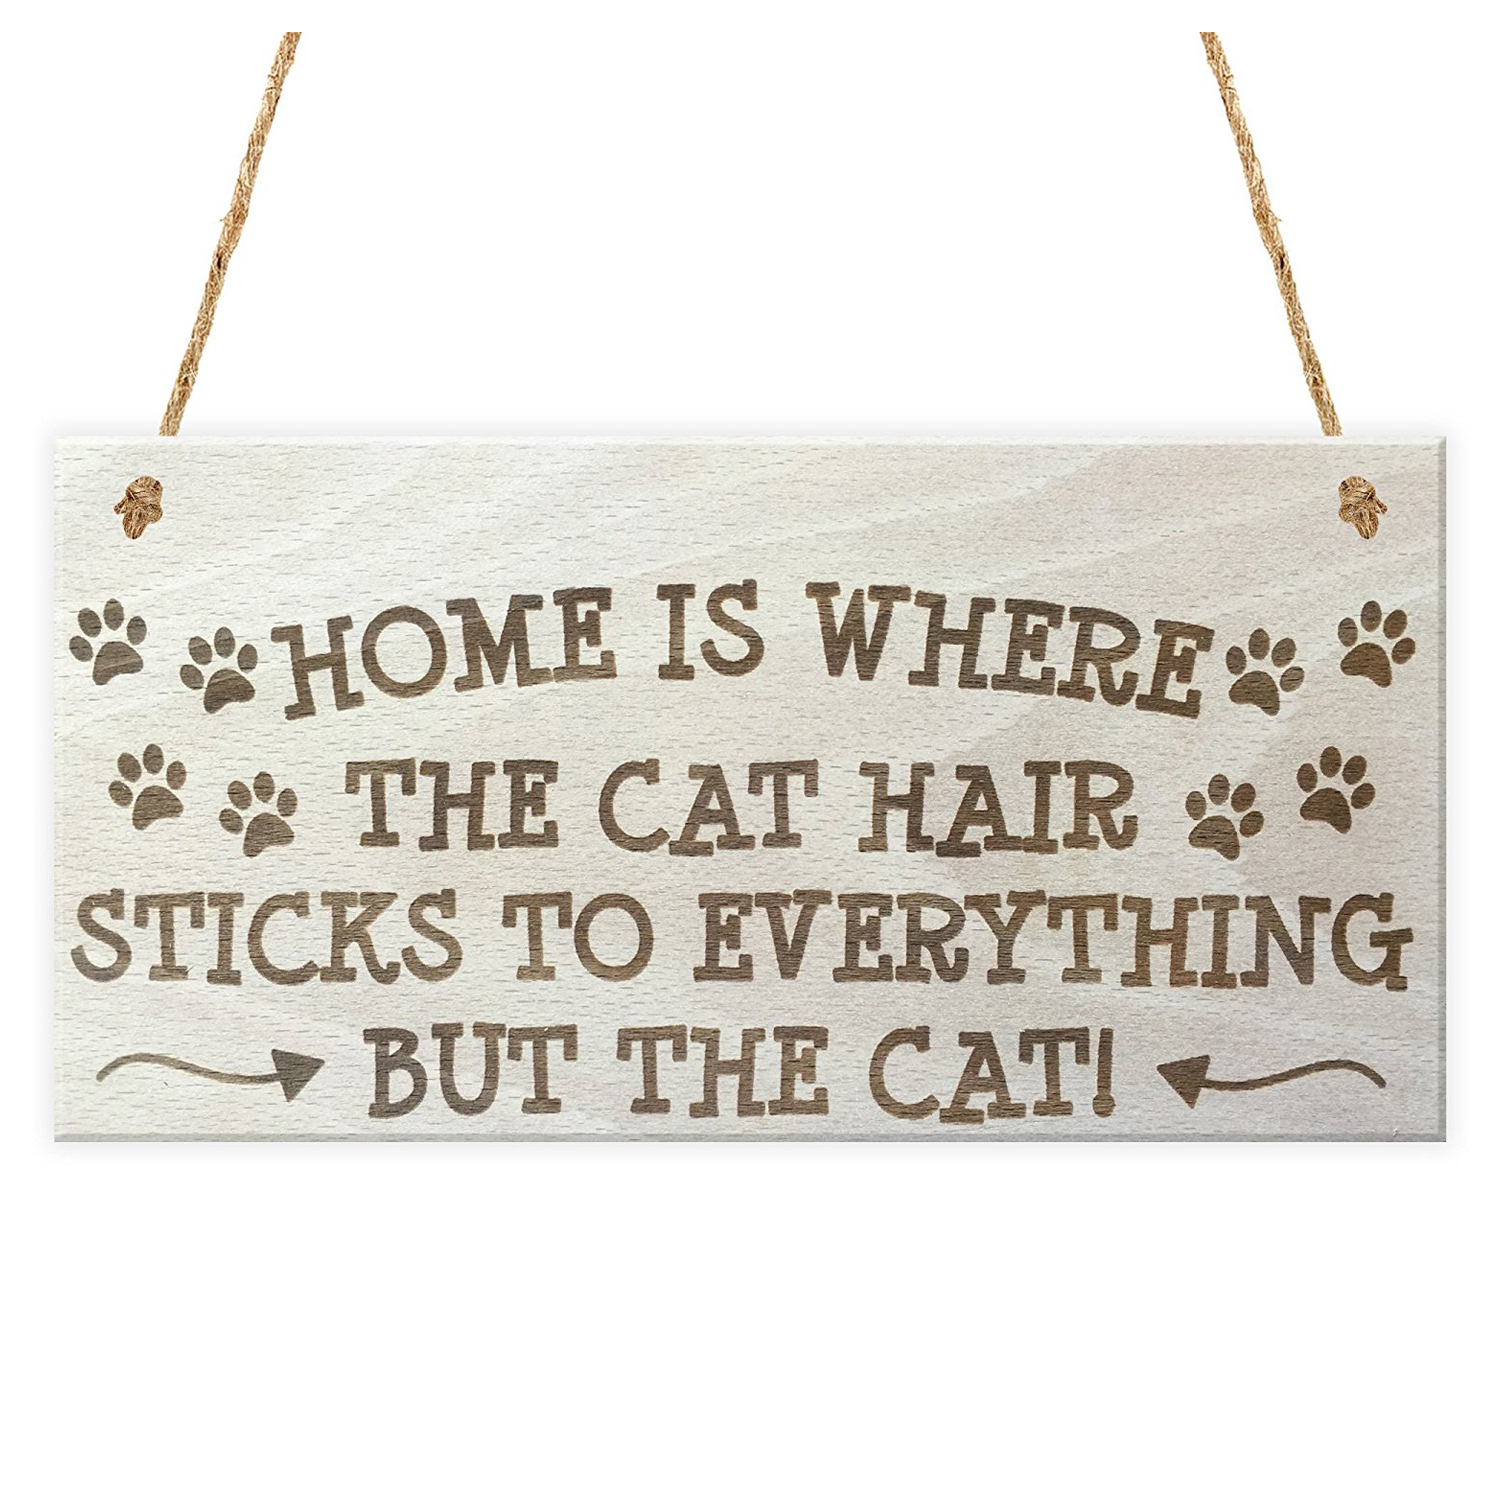 The Best Home Is Where The Cat Hair Sticks To Everything But The Cat Novelty Wooden Hanging Plaque Cats Owner Gift Sign Home Decor Home & Garden